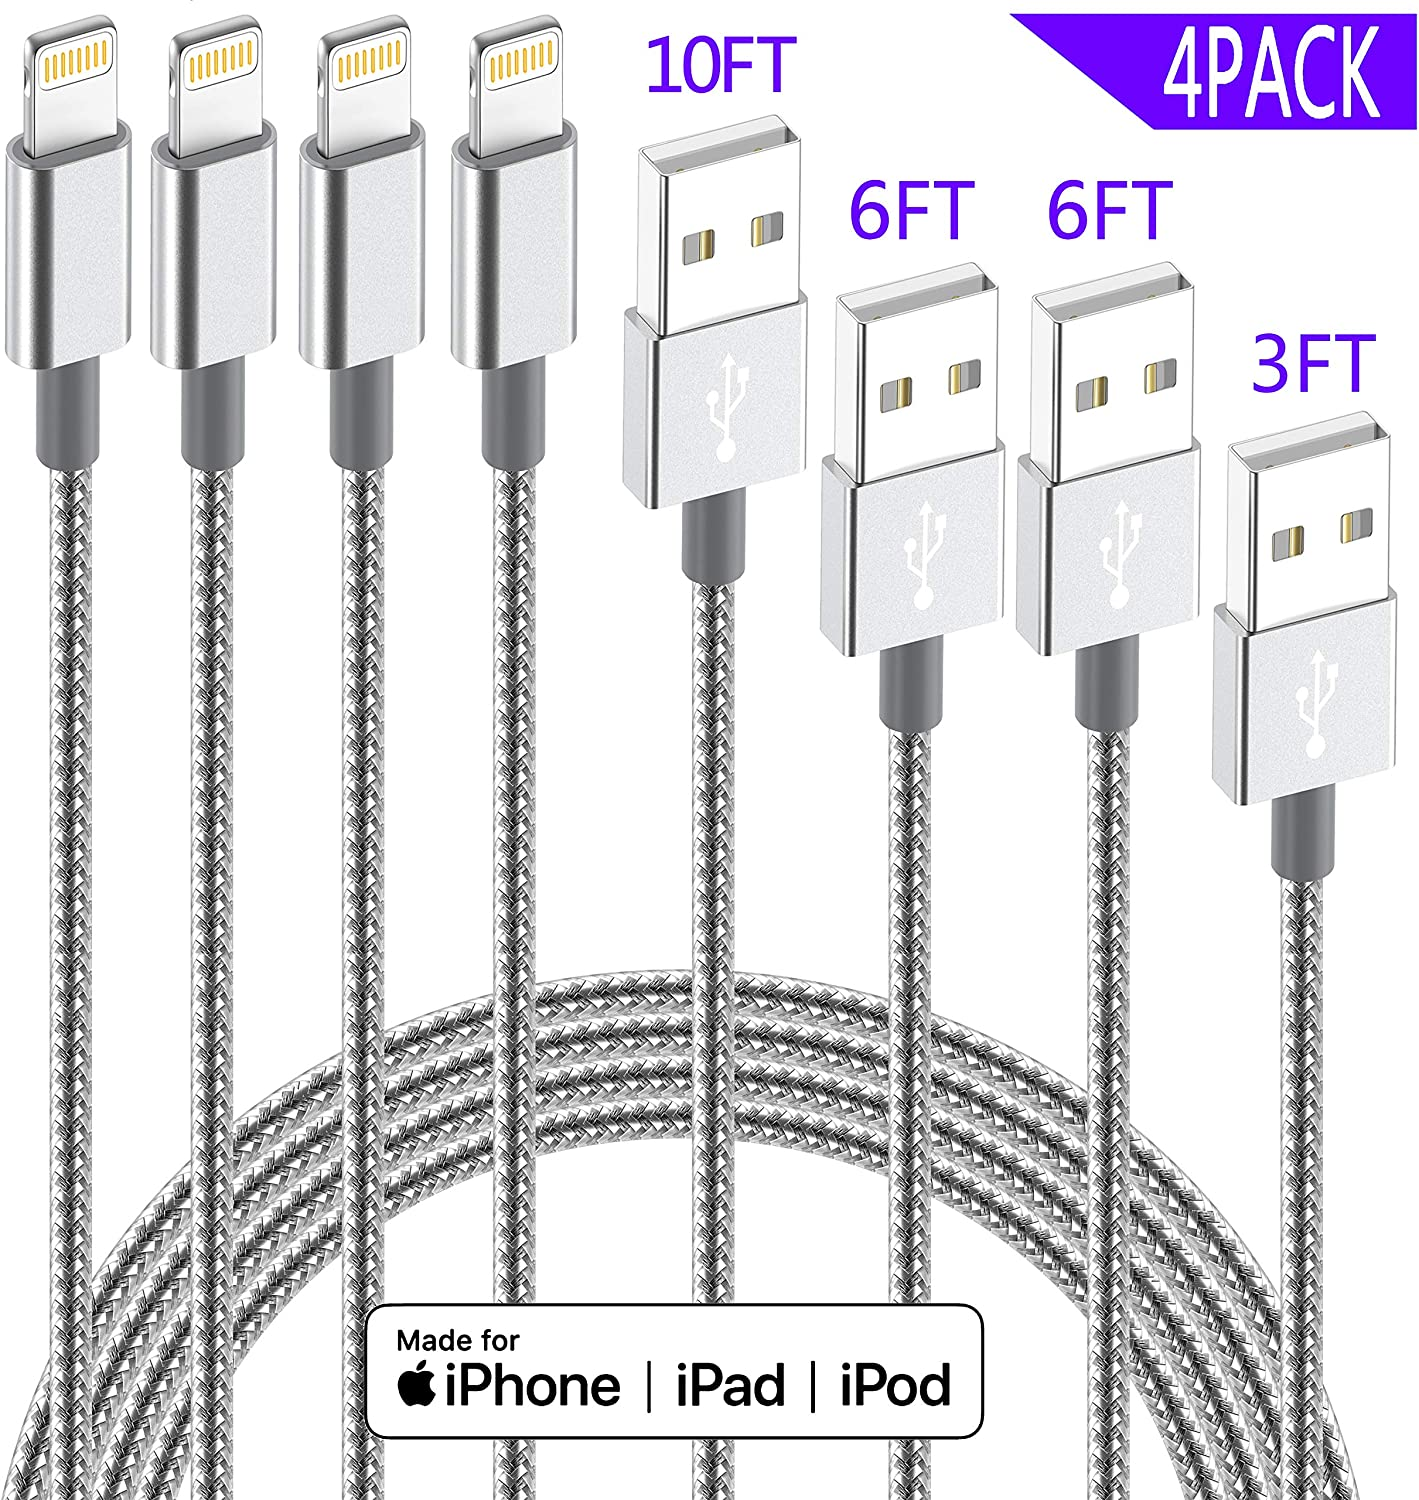 iPhone Lightning Cable Apple MFi Certified IDiSON 4Pack(10ft 6ft 6ft 3ft) Braided Nylon Fast Charger Cable Compatible iPhone 11 Pro Max XS XR 8 Plus 7 ...